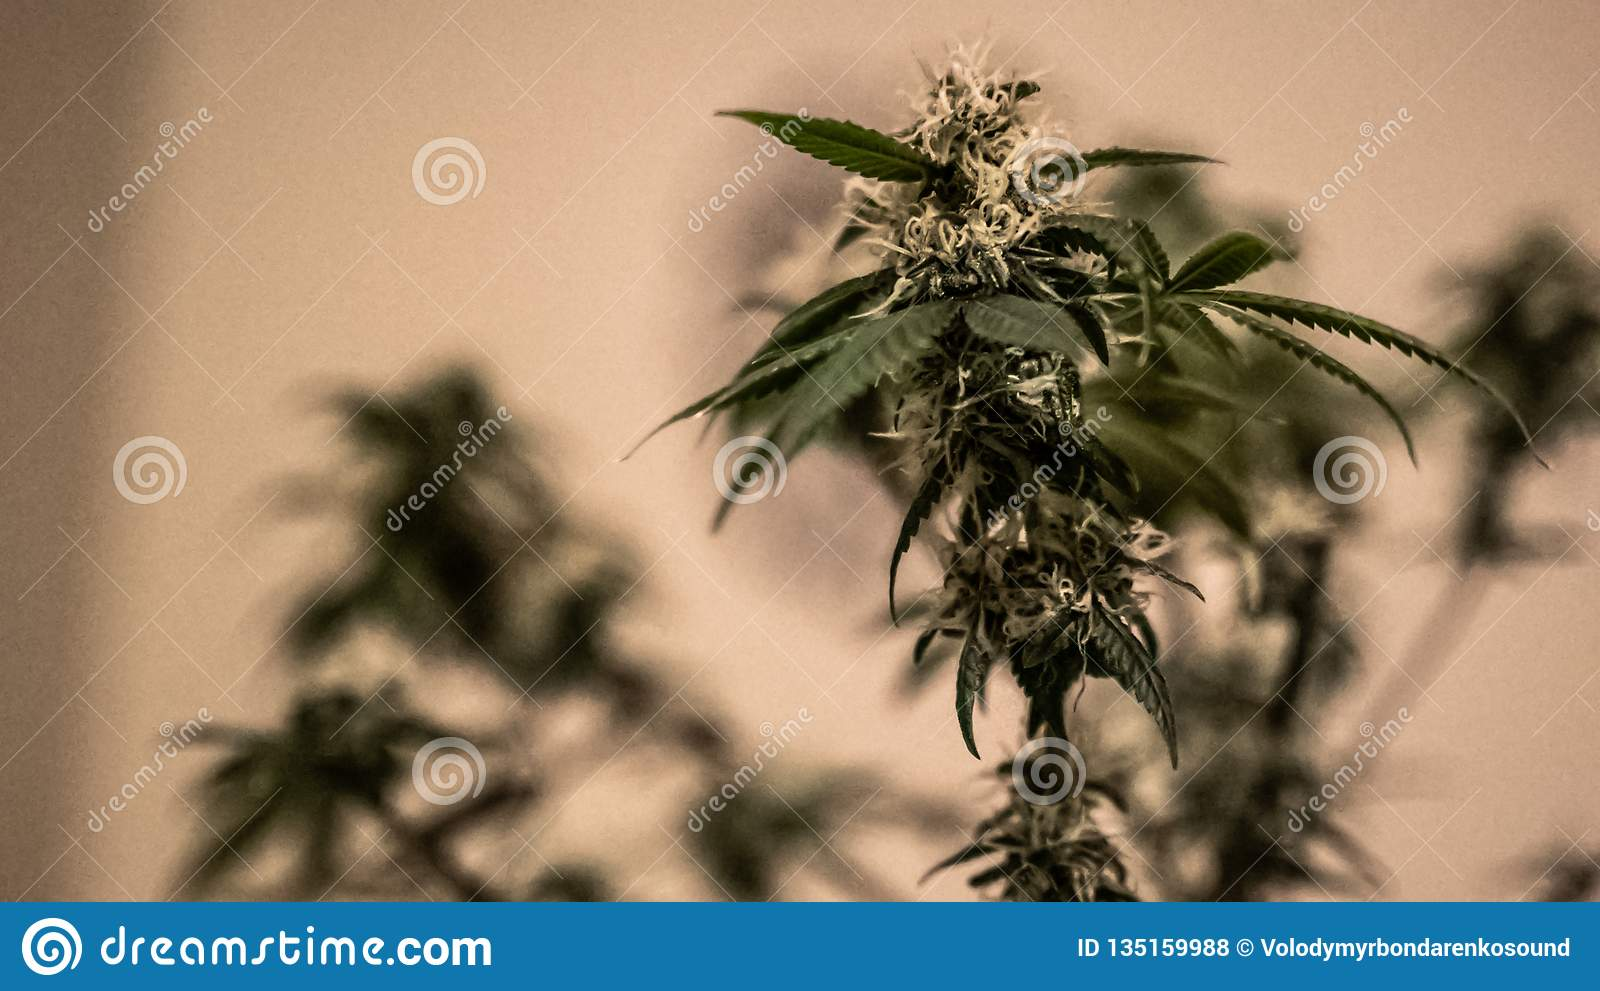 Medical Marijuana plants. Cannabis. Sativa